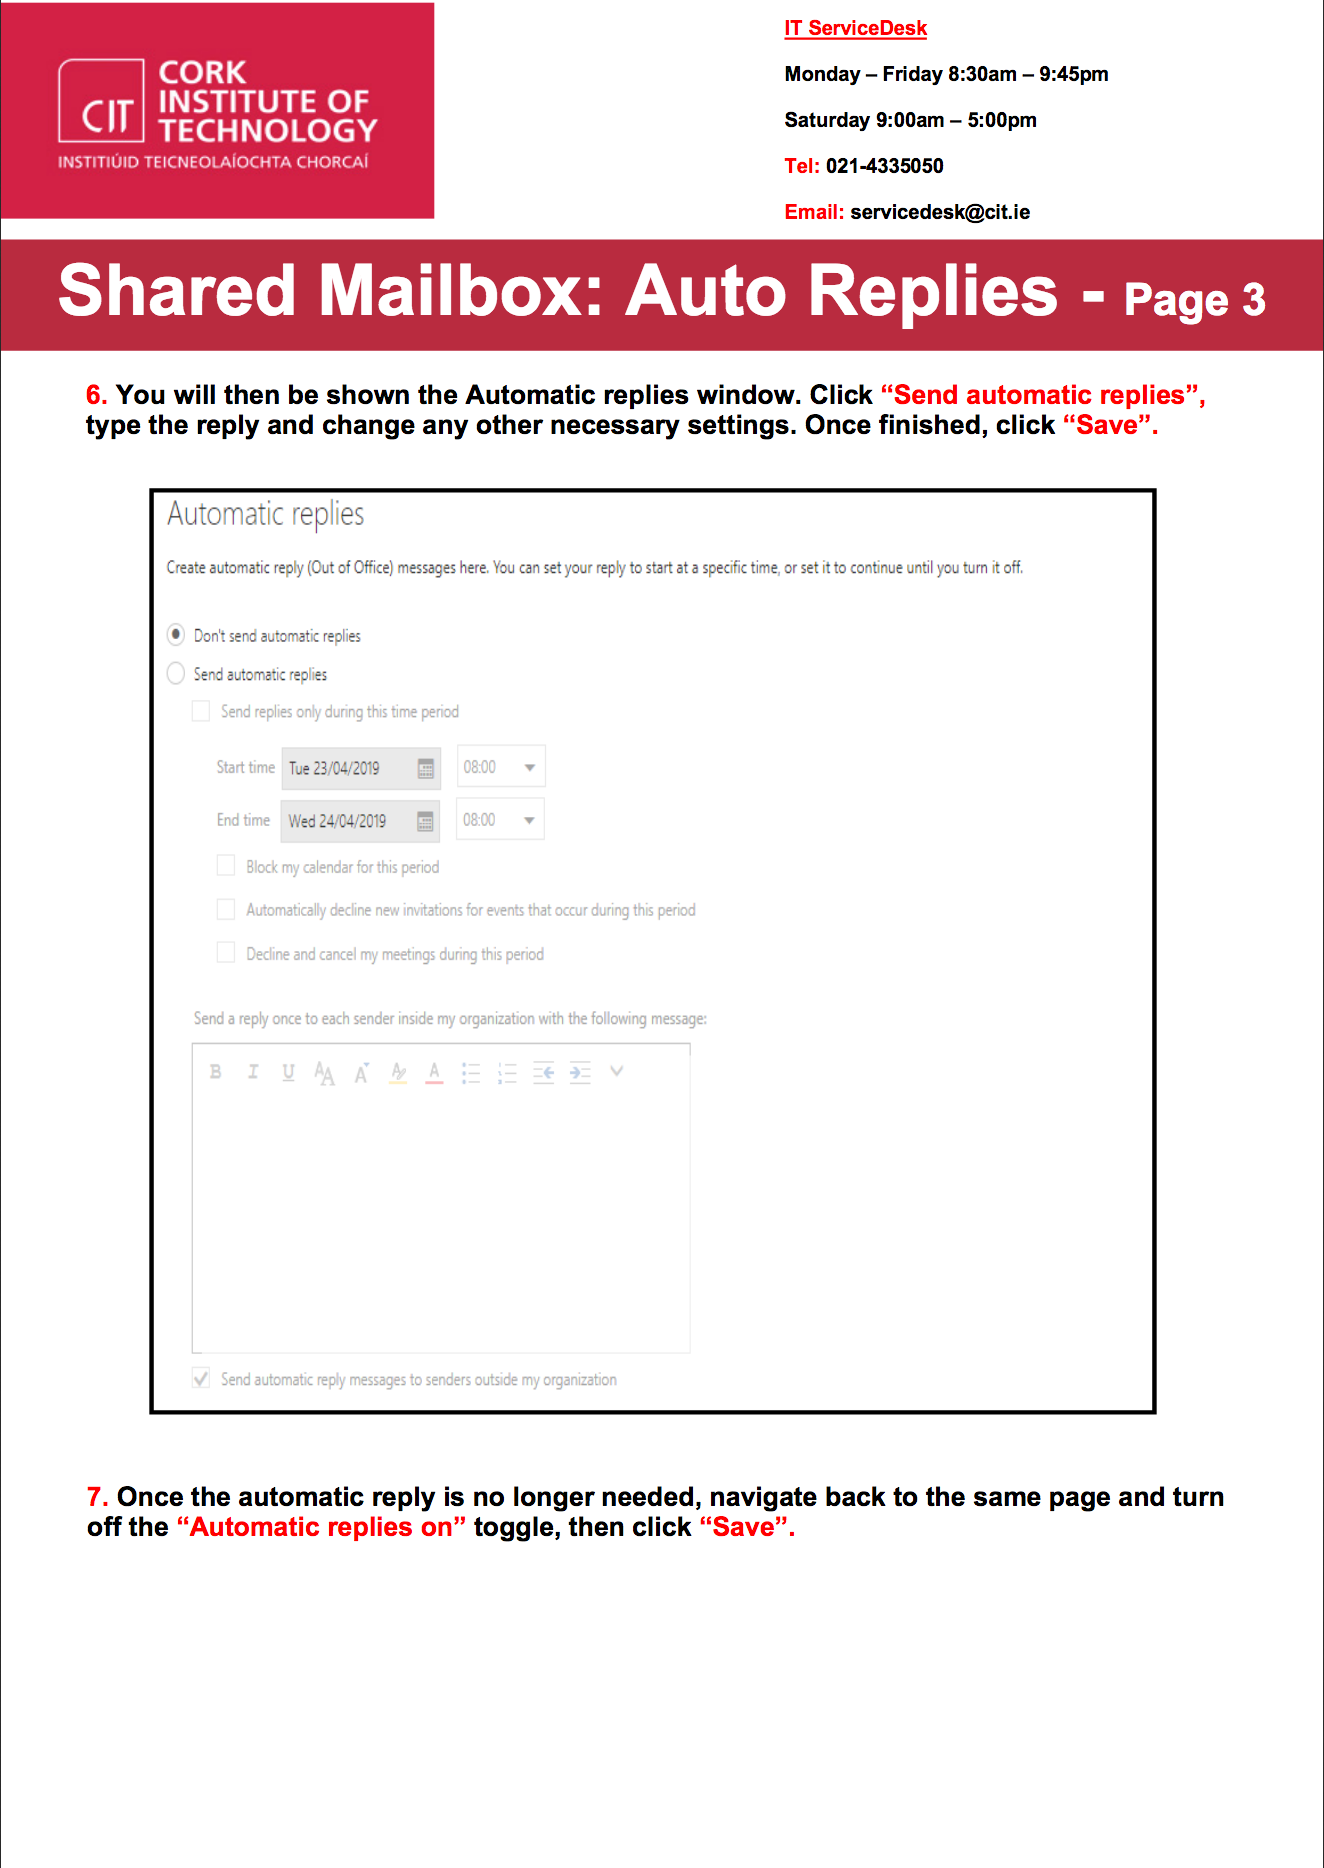 Shared Mailboxes - Automatic Replies (Old Outlook) : Cork Institute